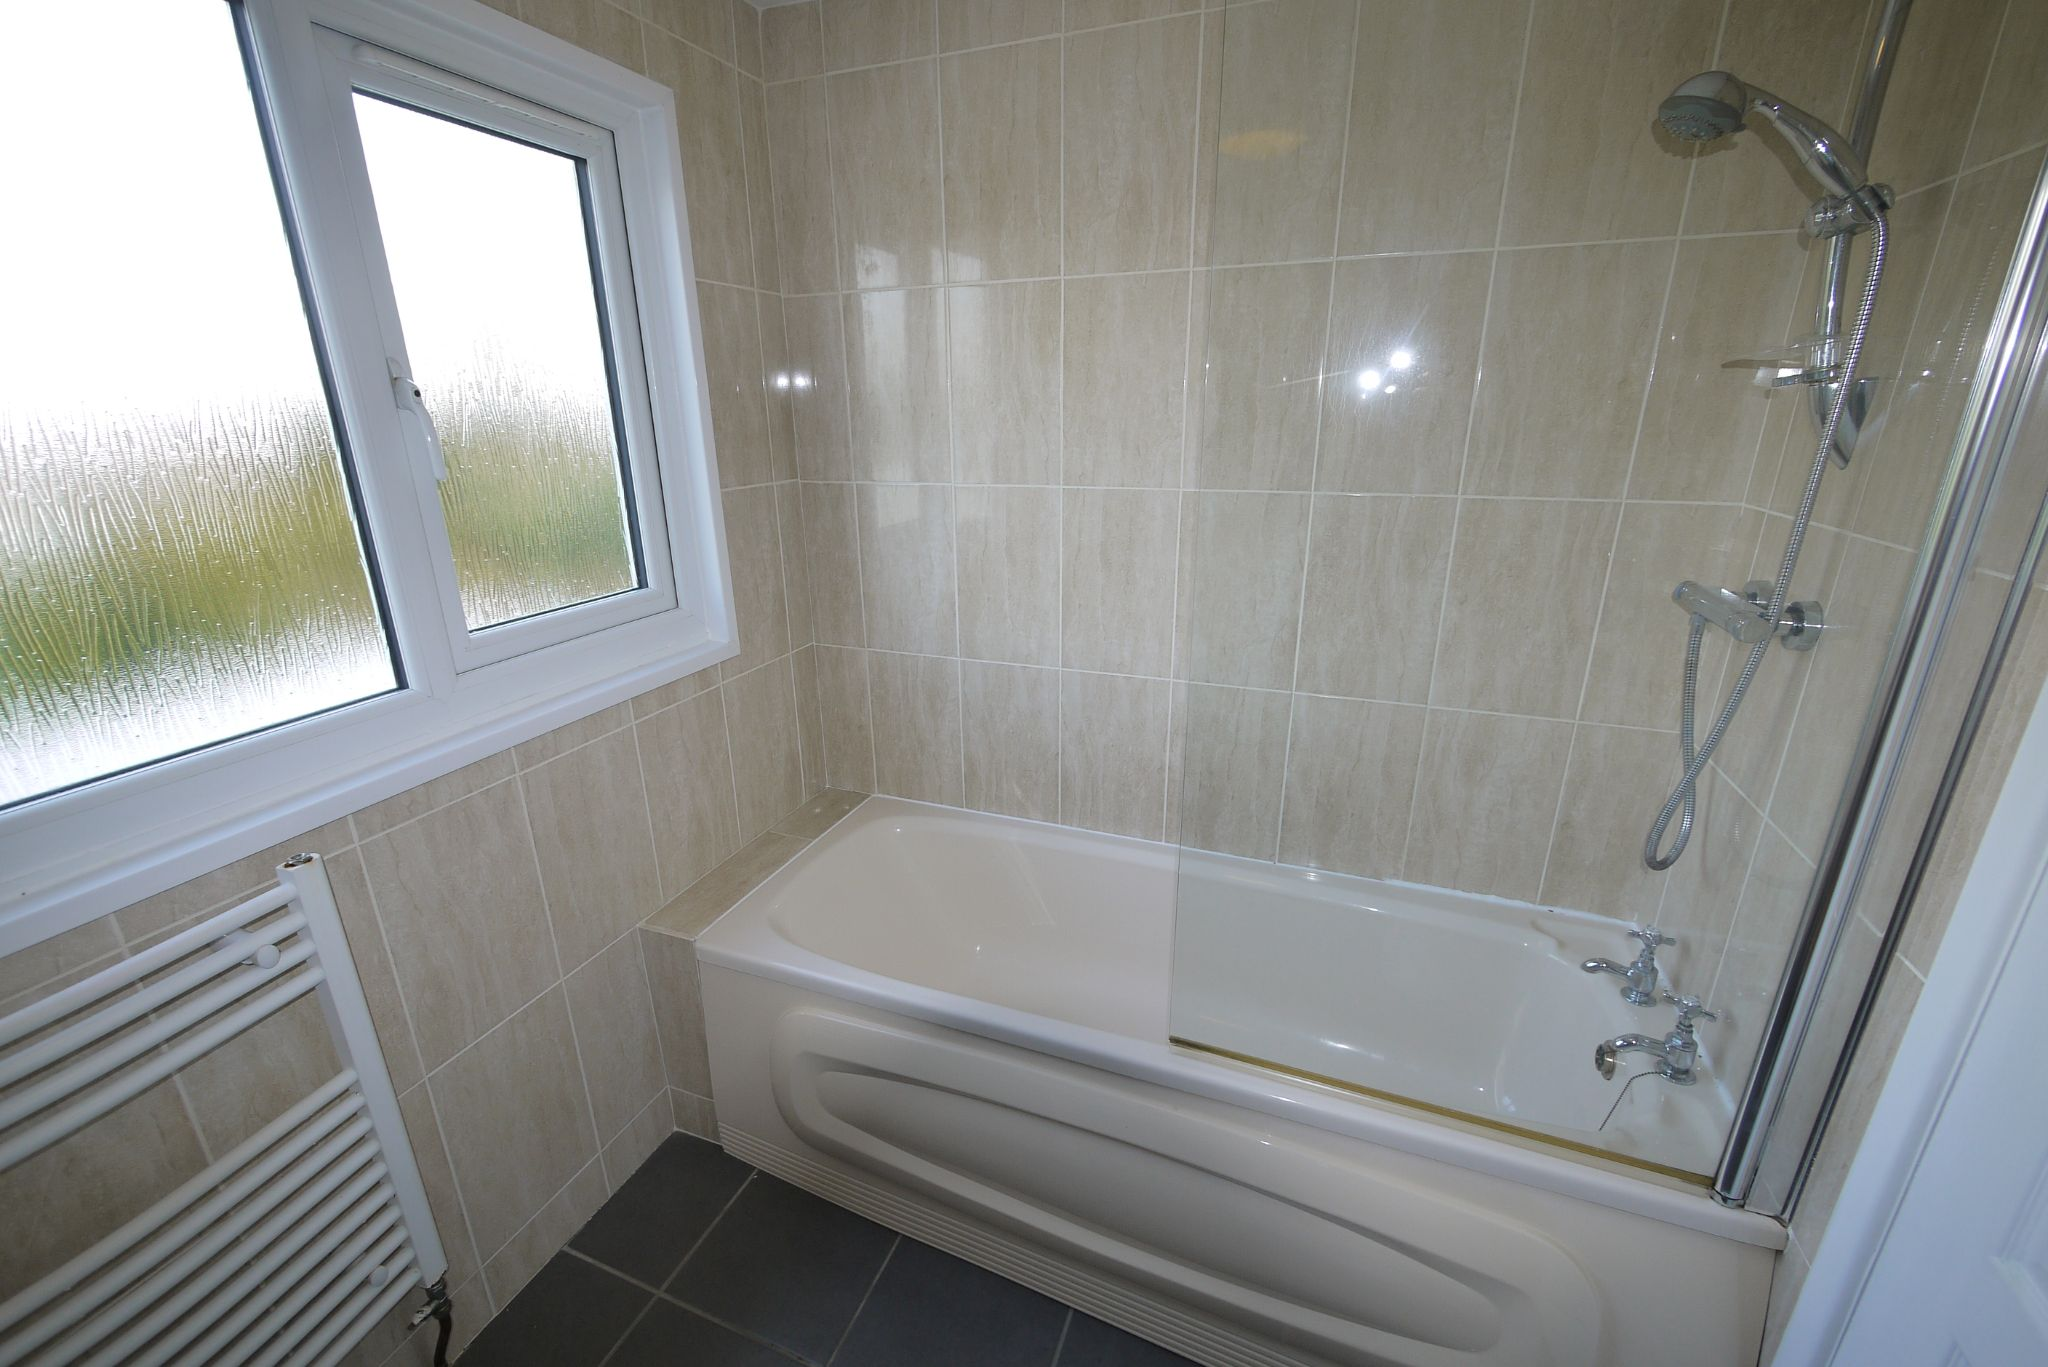 3 bedroom detached house SSTC in Brighouse - Photograph 14.